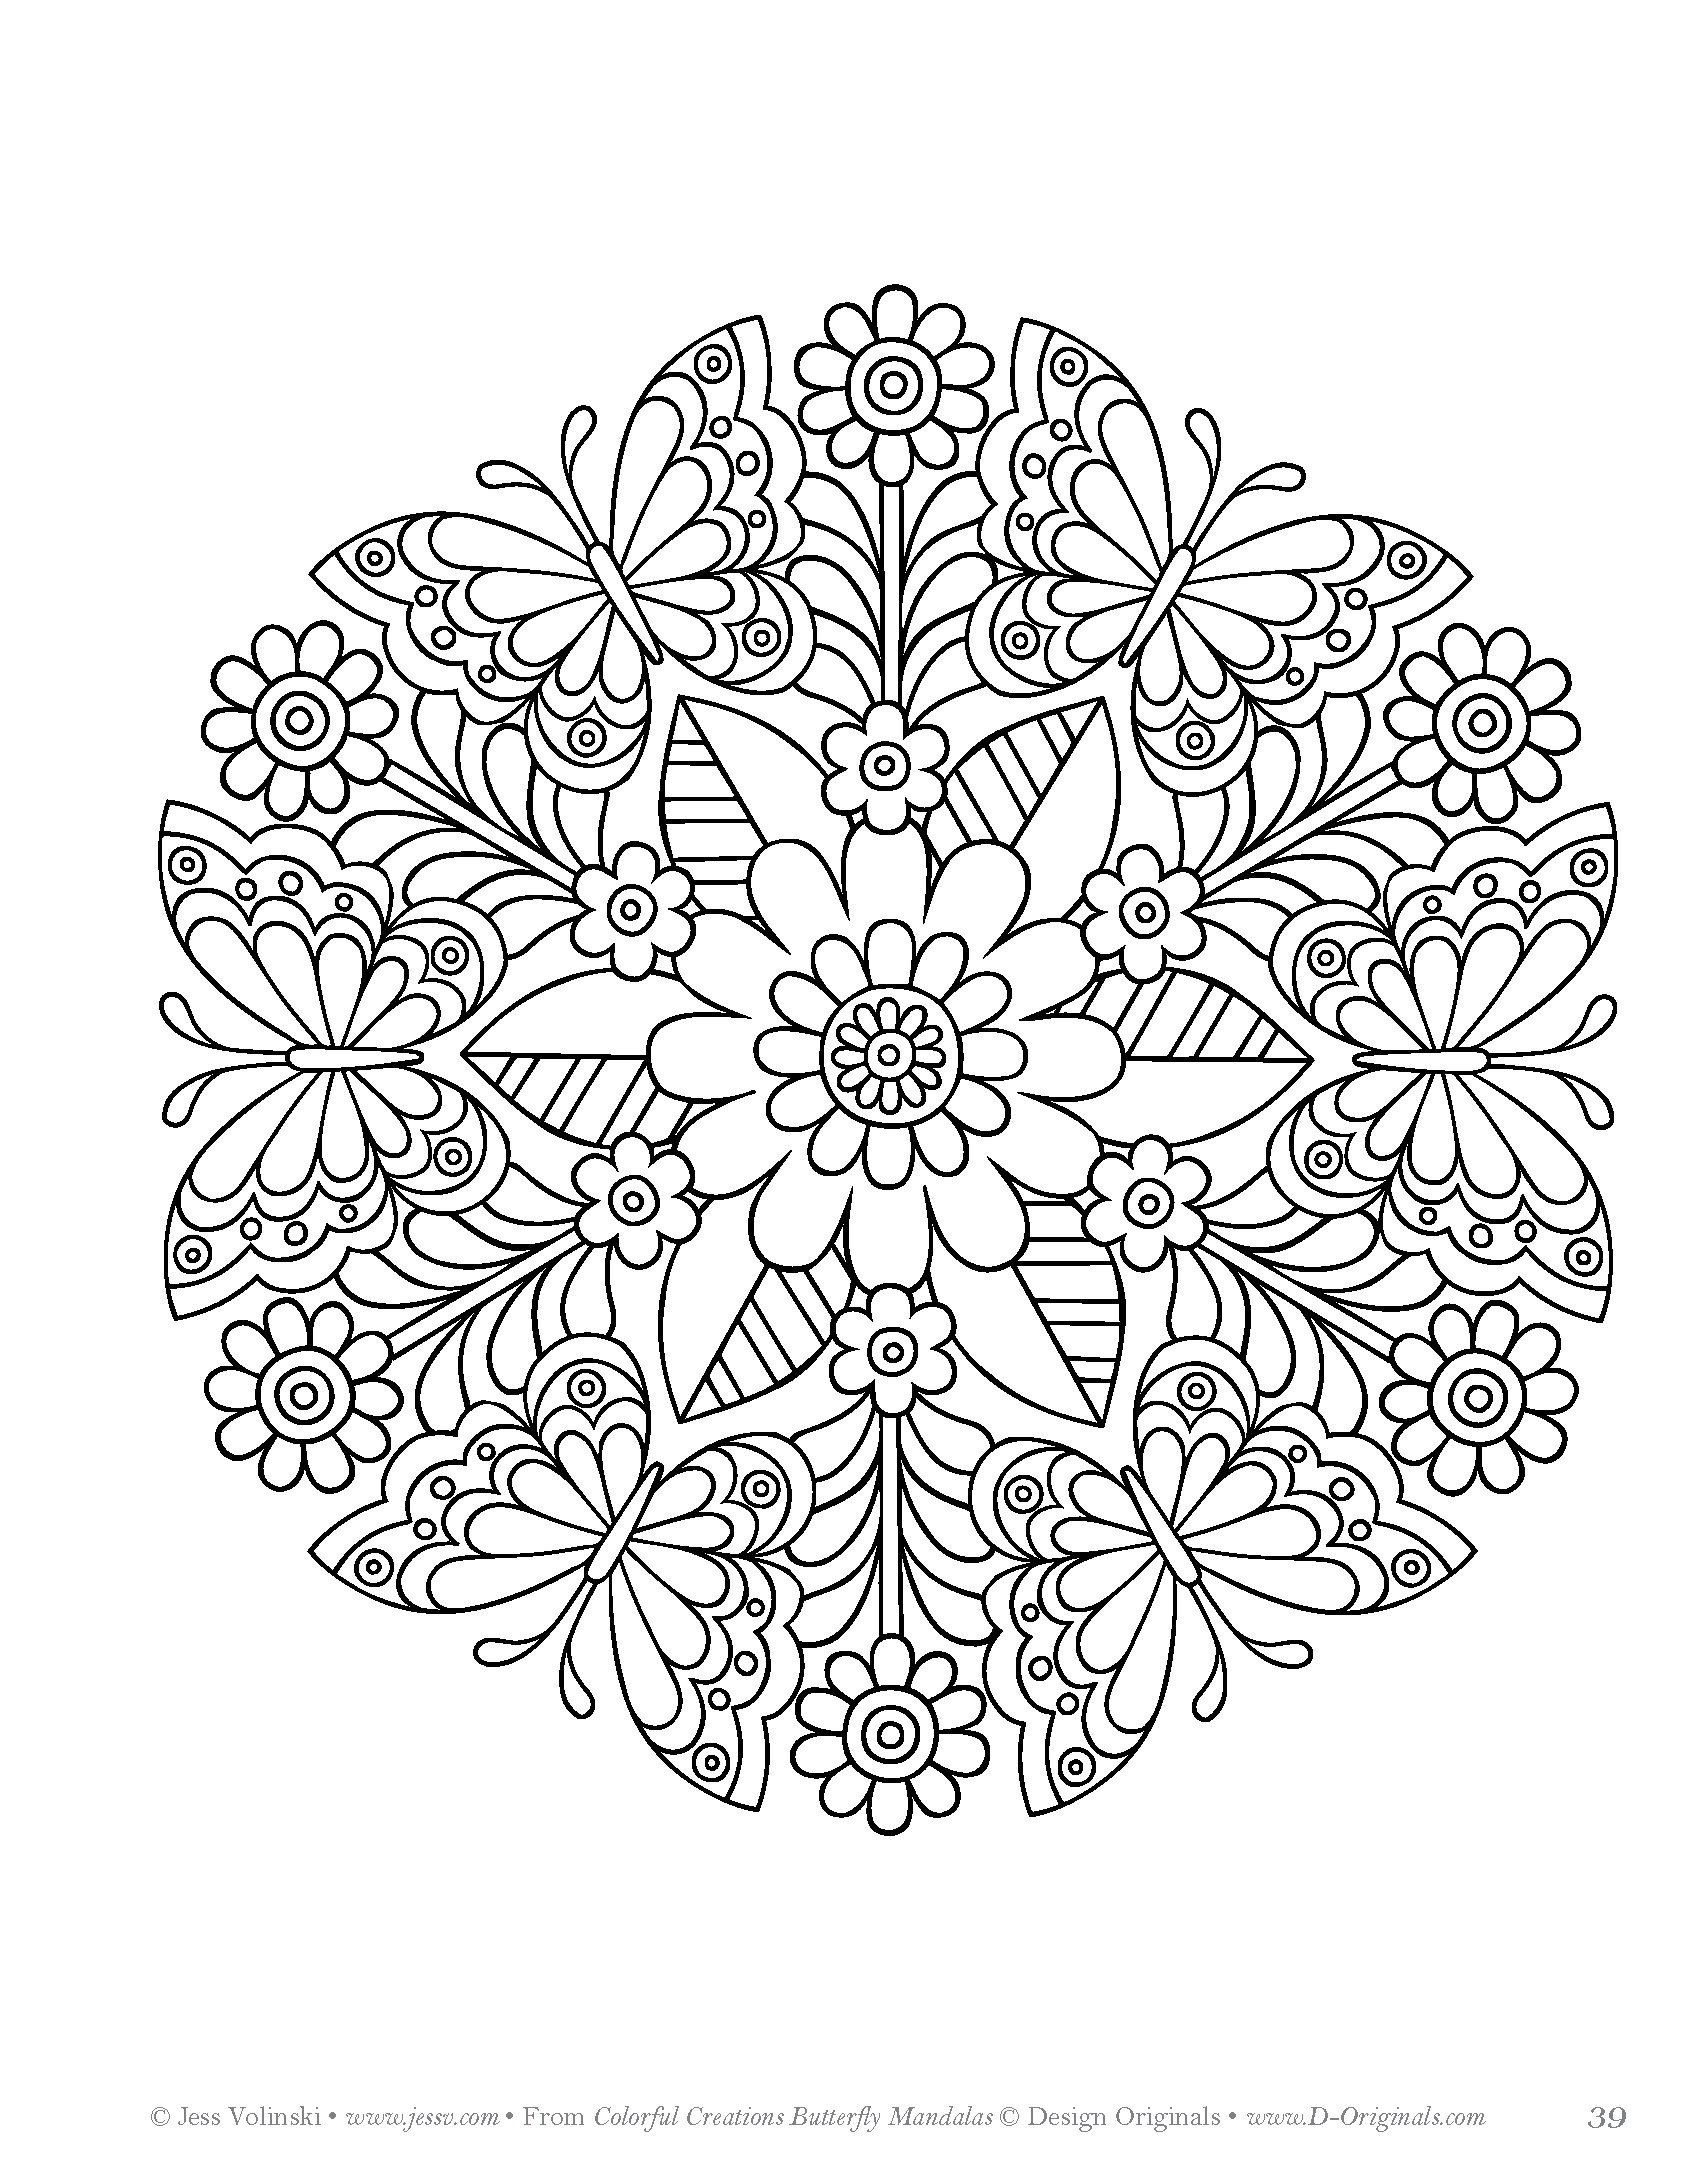 Colorful Creations Butterfly Mandalas Coloring Book Pages Designed To Inspire Creativity Jess Volinski